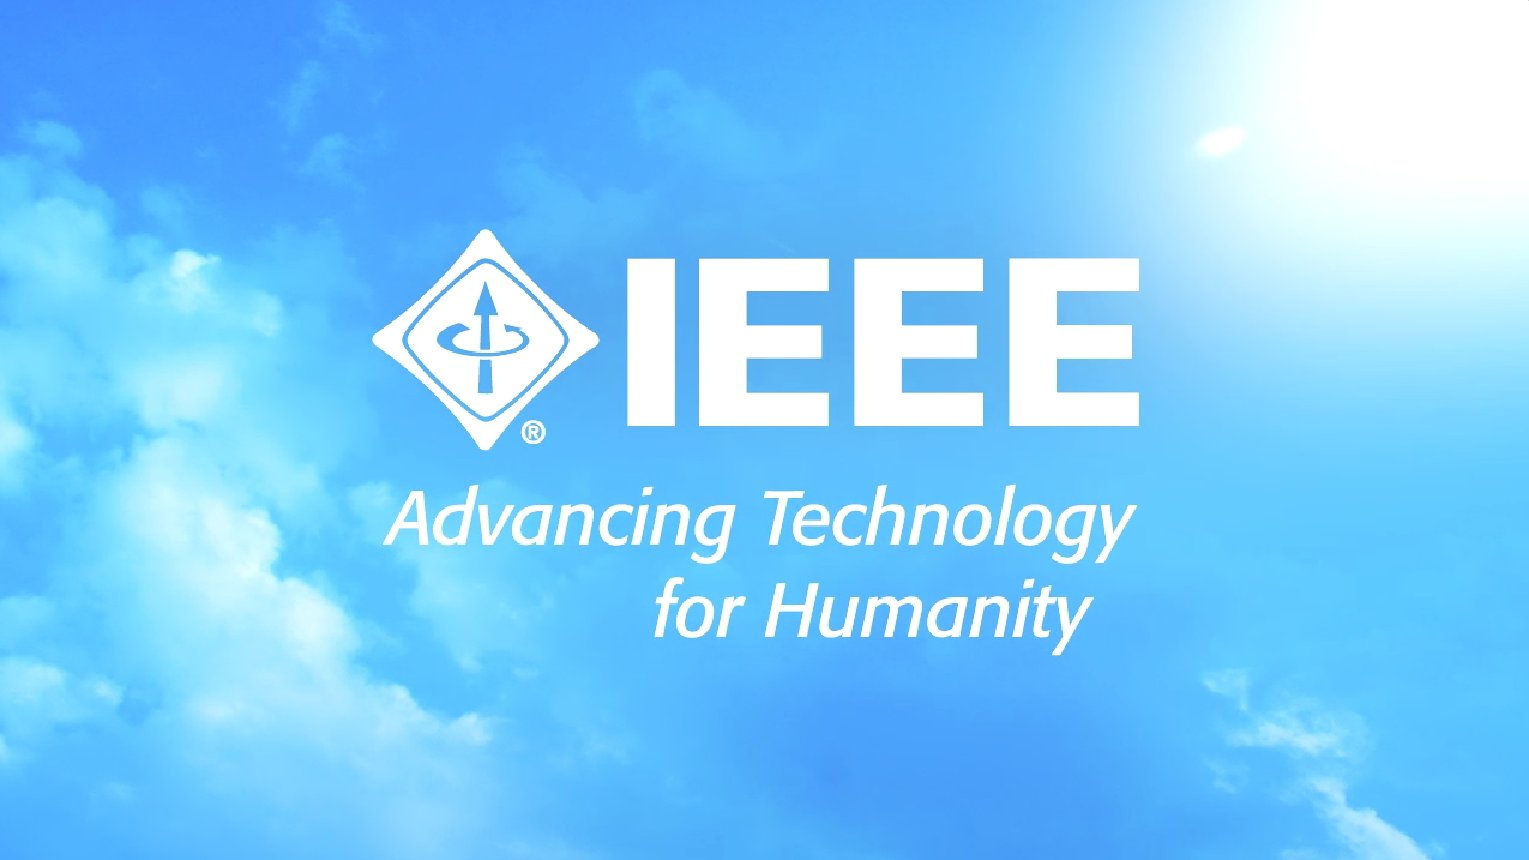 IEEE: Advancing Technology for Humanity